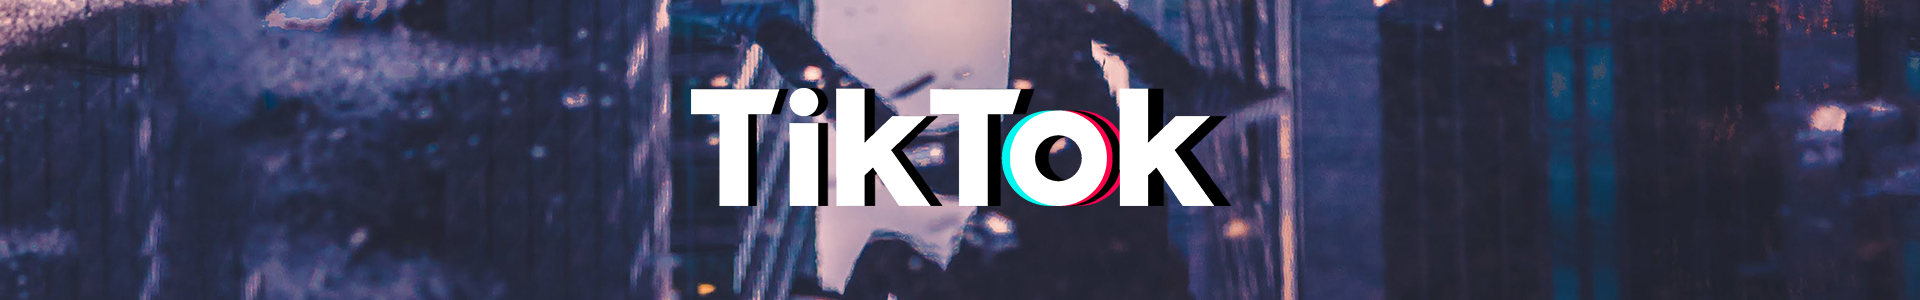 Tiktok Video Plattform